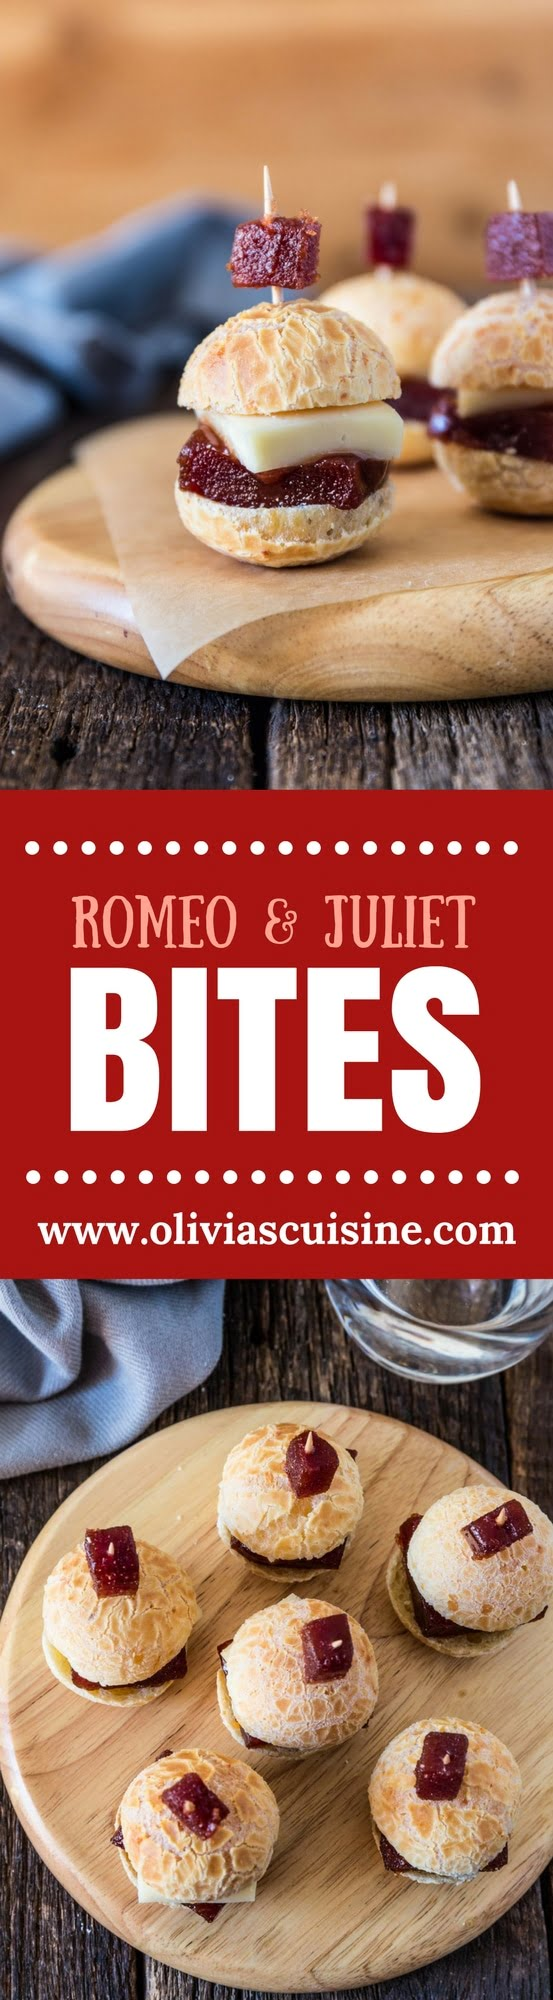 Romeo and Juliet Bites | www.oliviascuisine.com | A popular Brazilian flavor combination transformed into a party sized appetizer, which I decided to call Romeo and Juliet Bites! Because, as we say in Brazil, cheese without guava paste (goiabada) is like Romeo without Juliet. (Recipe by @oliviascuisine.)